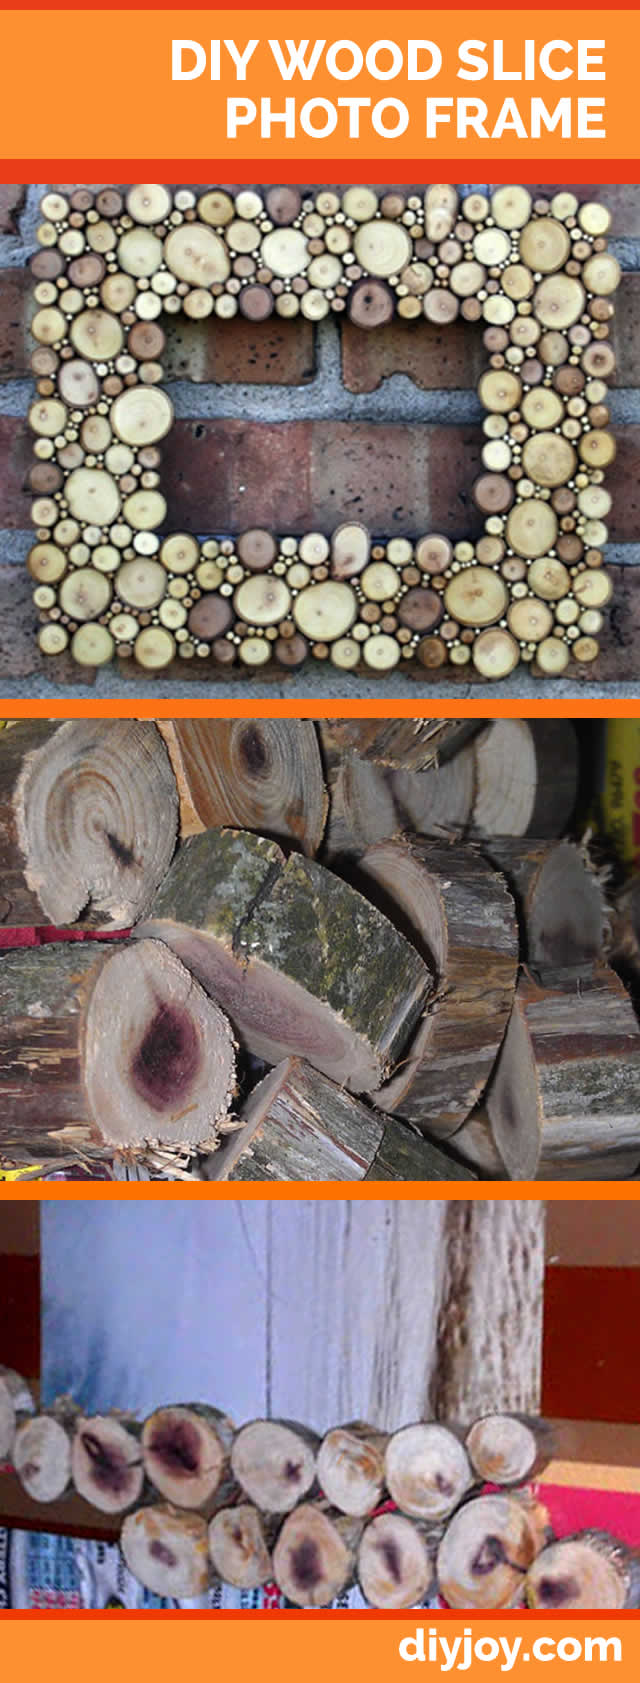 29 rustic diy home decor ideas diy wood slice picture frame rustic home decor ideas solutioingenieria Choice Image